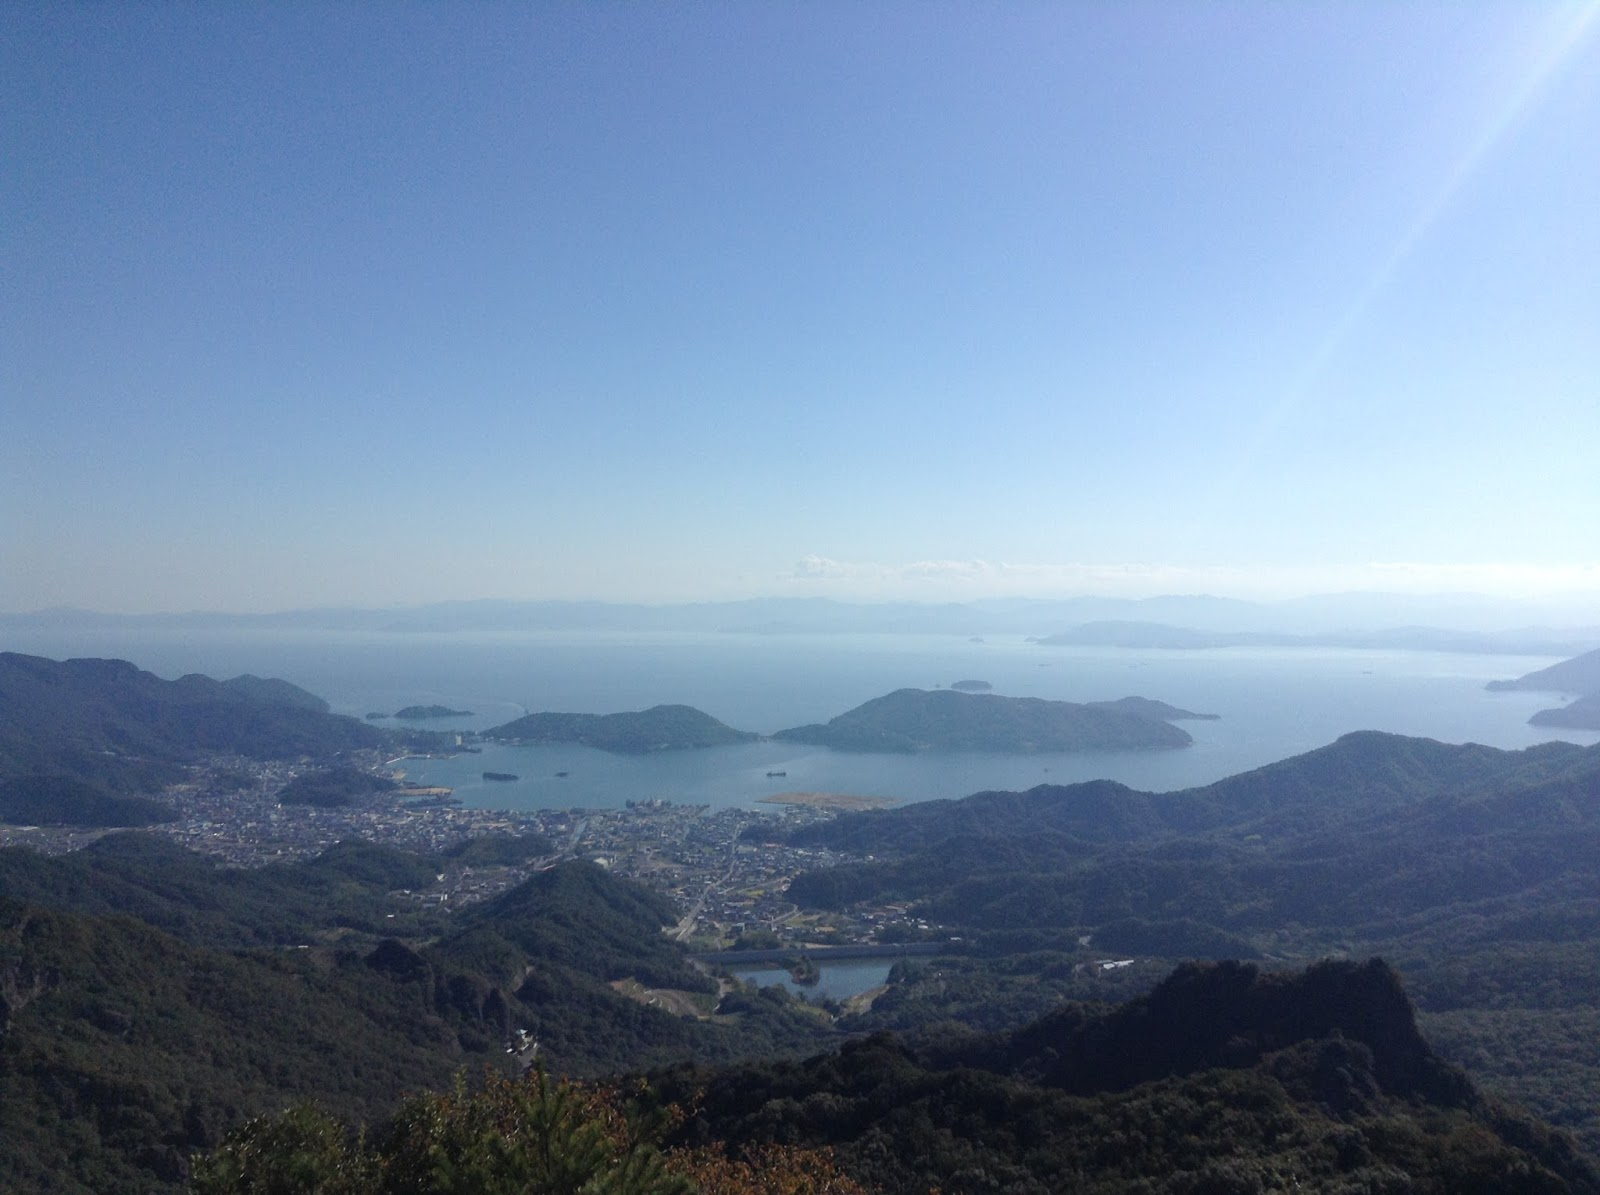 Inland sea, Shodoshima